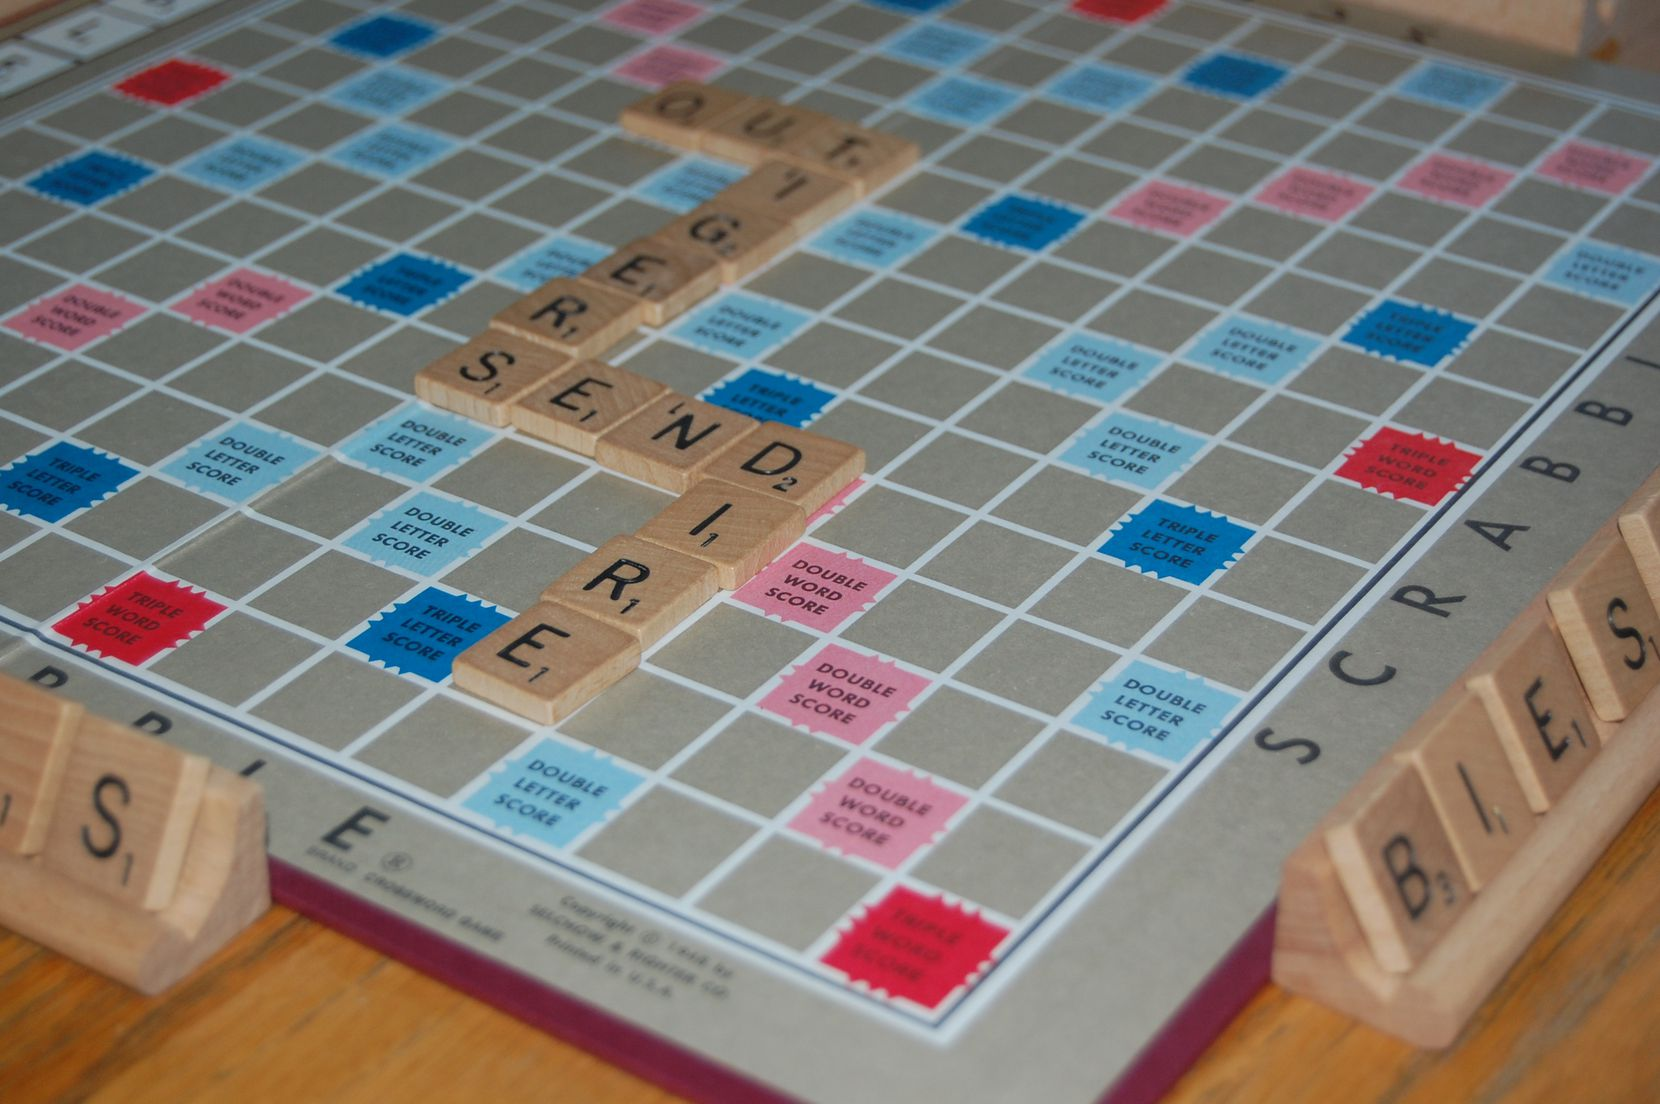 For those in the same place with Mom, traditional activities like board games can be fun.